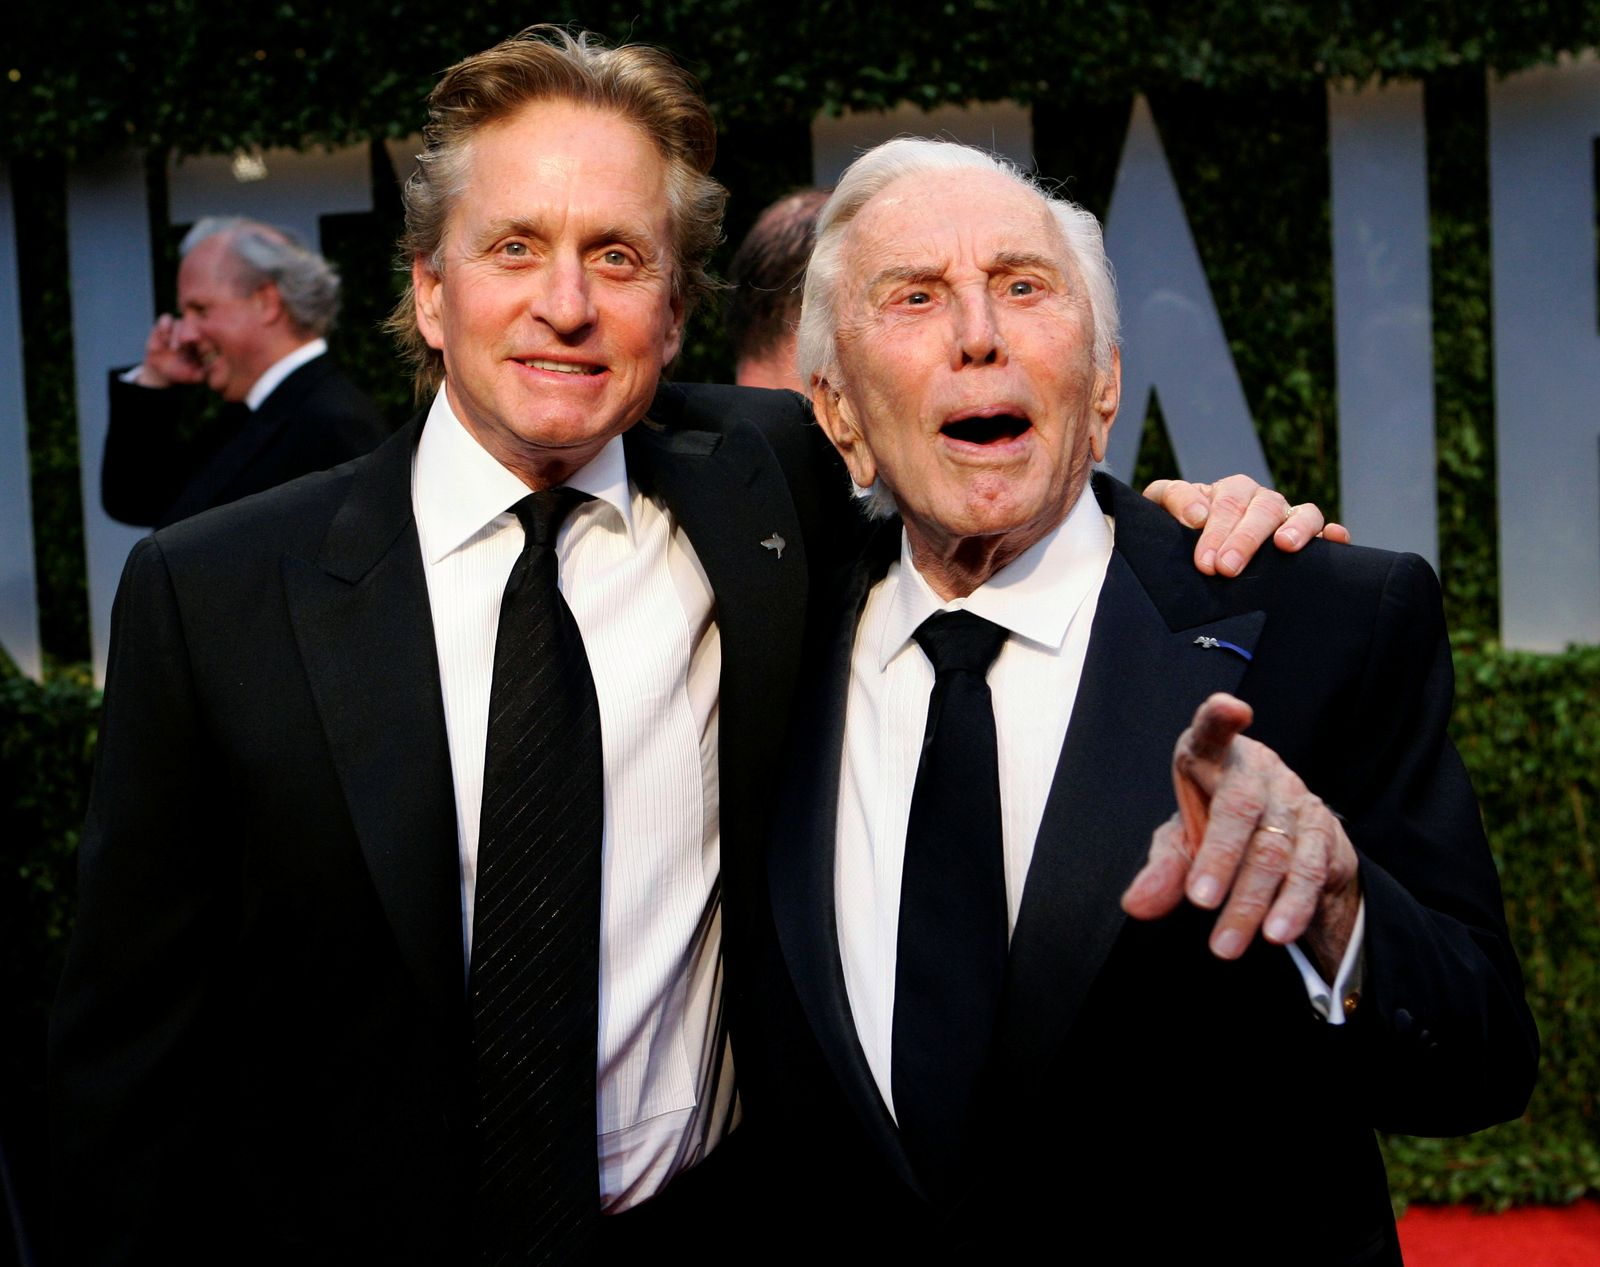 FILE PHOTO: Actor Michael Douglas and his father, actor Kirk Douglas, arrive together at the 2009 Vanity Fair Oscar Party in West Hollywood, California